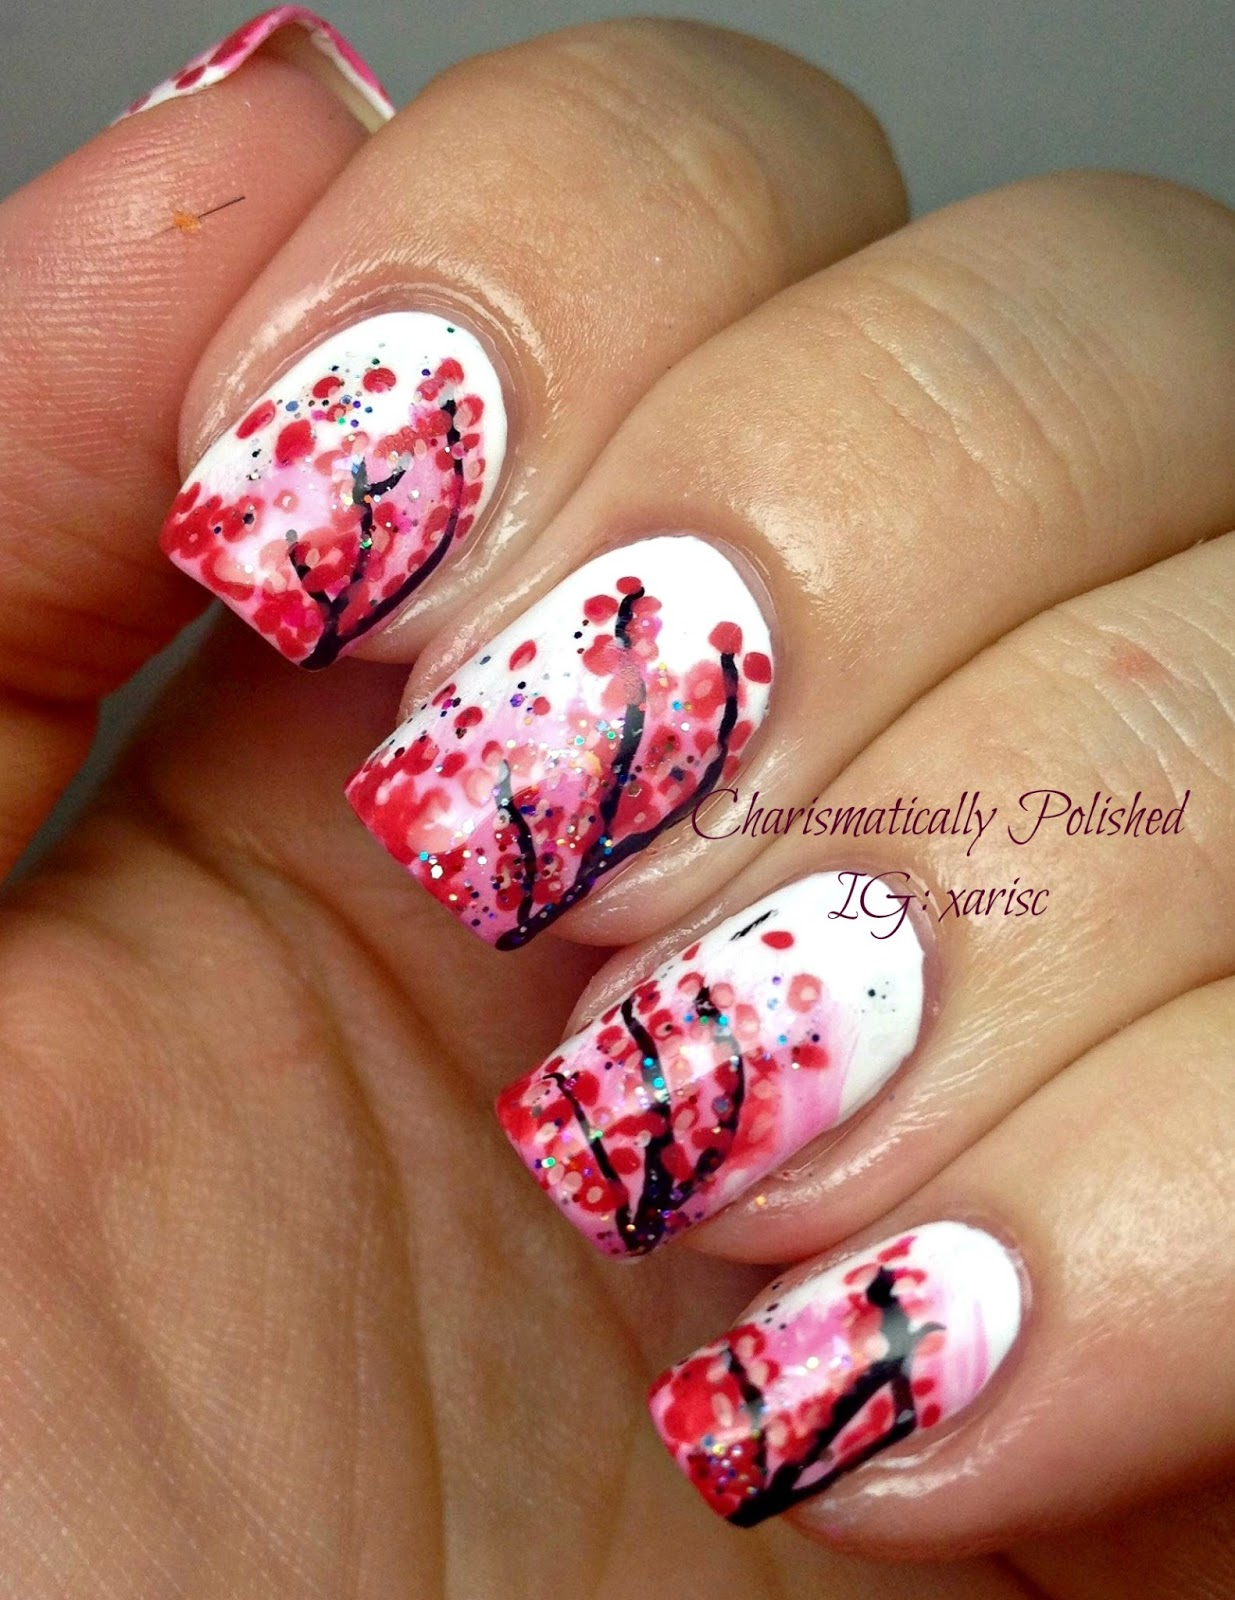 Charismatically Polished: Cherry Blossoms, take two!